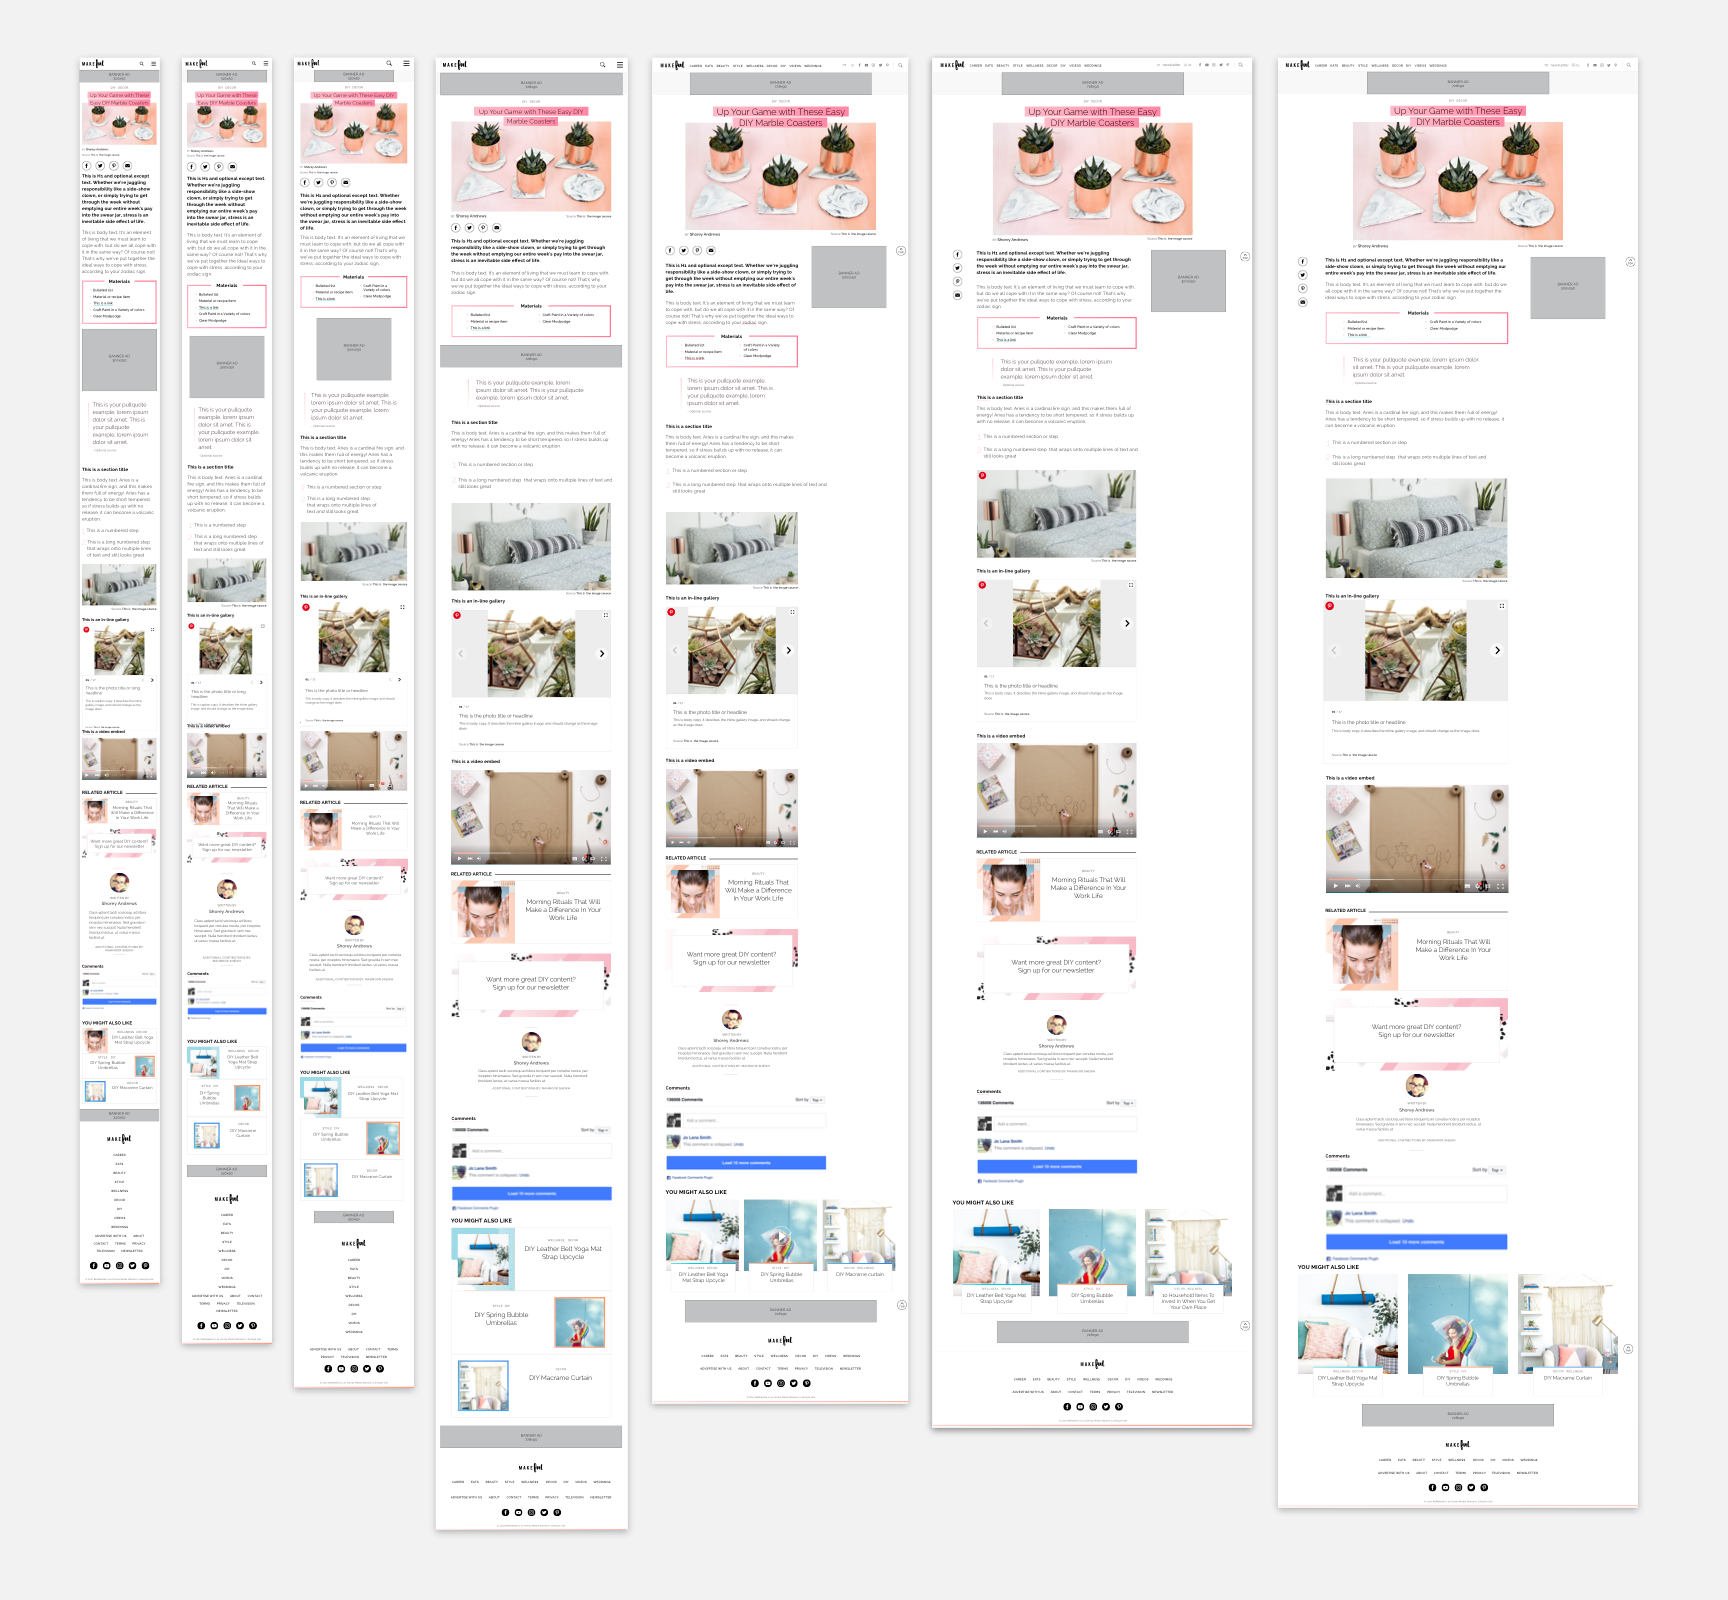 Article with an image hero showing all the various components at all screen sizes. The site was designed and built in such a way that the components could be utilized based on the editor's needs, but wouldn't always necessarily be visible.